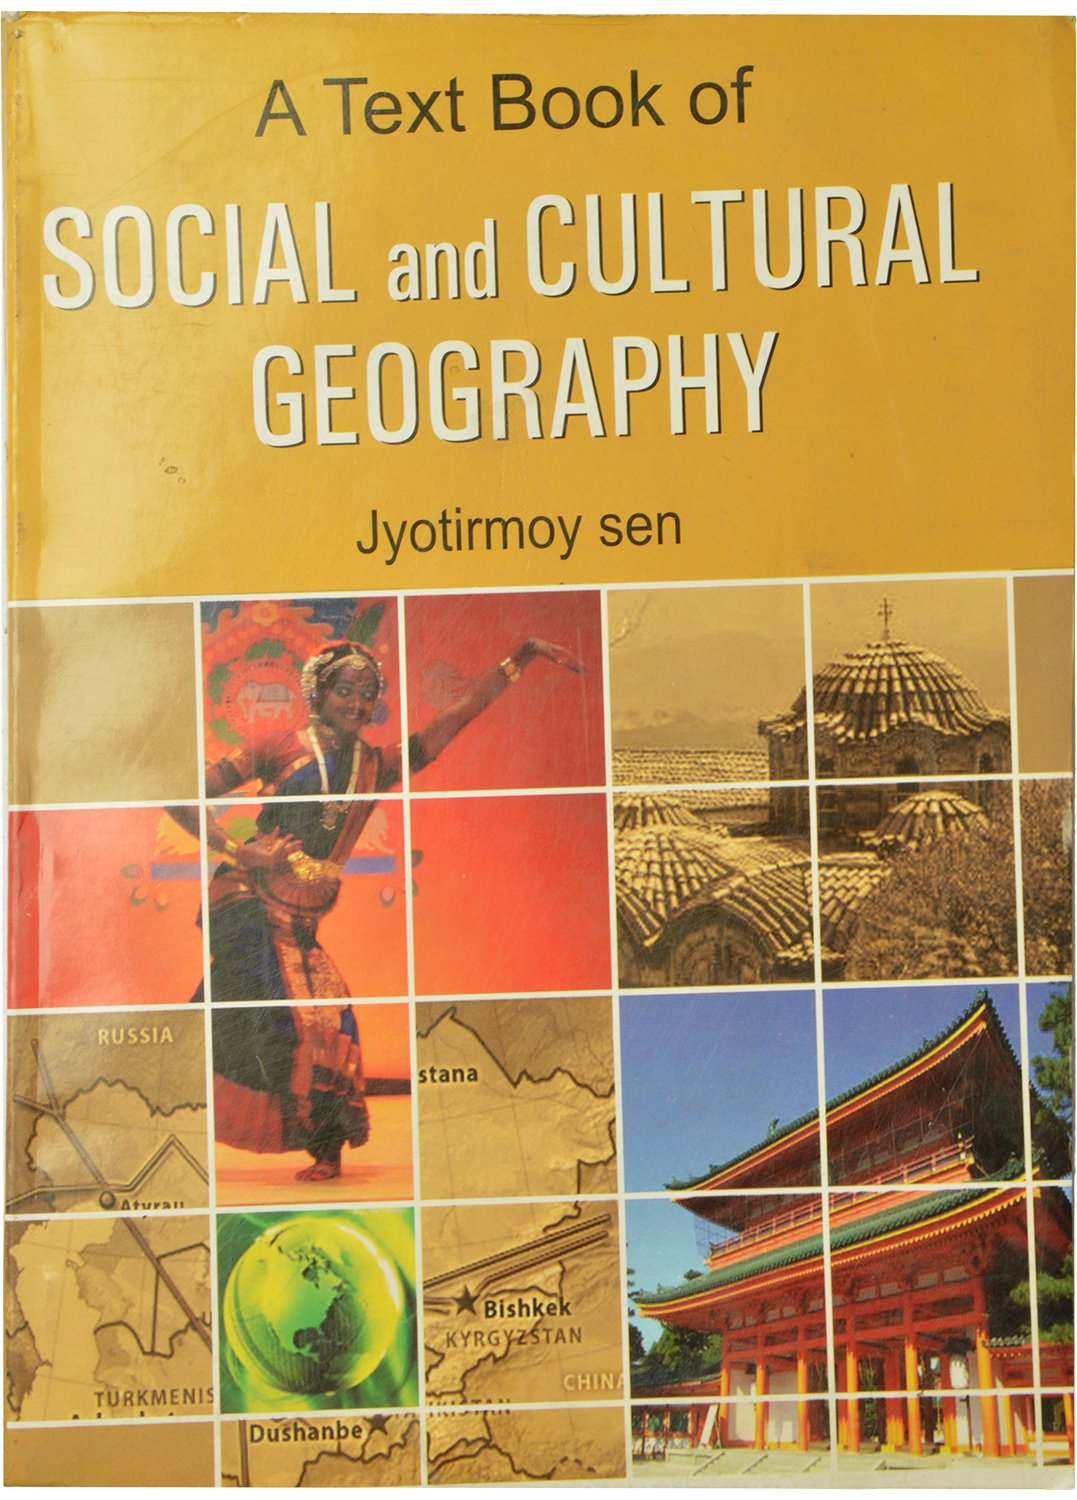 TEXTBOOK OF SOCIAL AND CULTURAL GEOGRAPHY